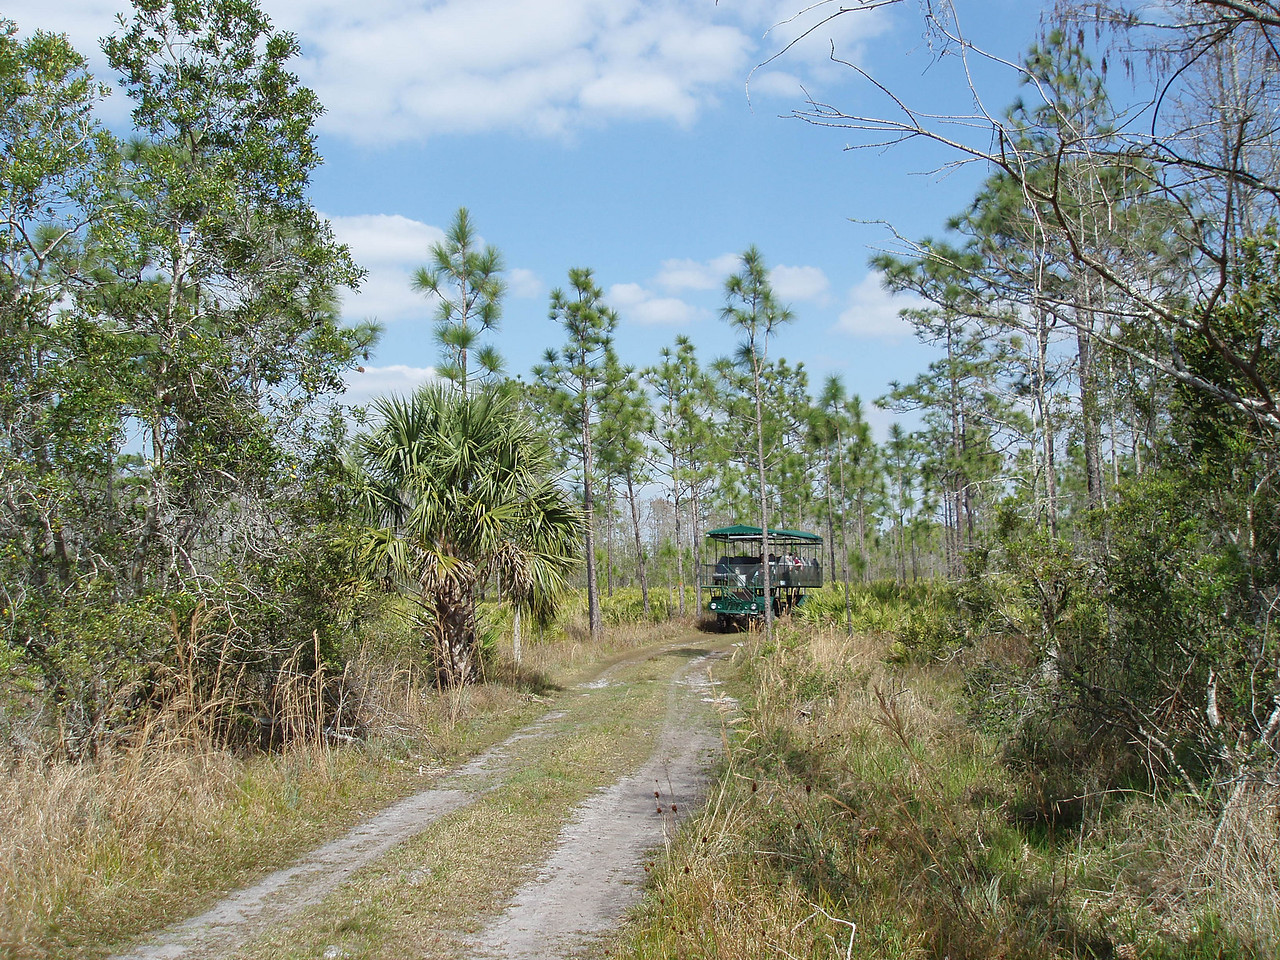 Swamp buggy tour coming down the trail<br /> location: Forever Florida<br /> PHOTO CREDIT: Robert Coveney / Florida Trail Association